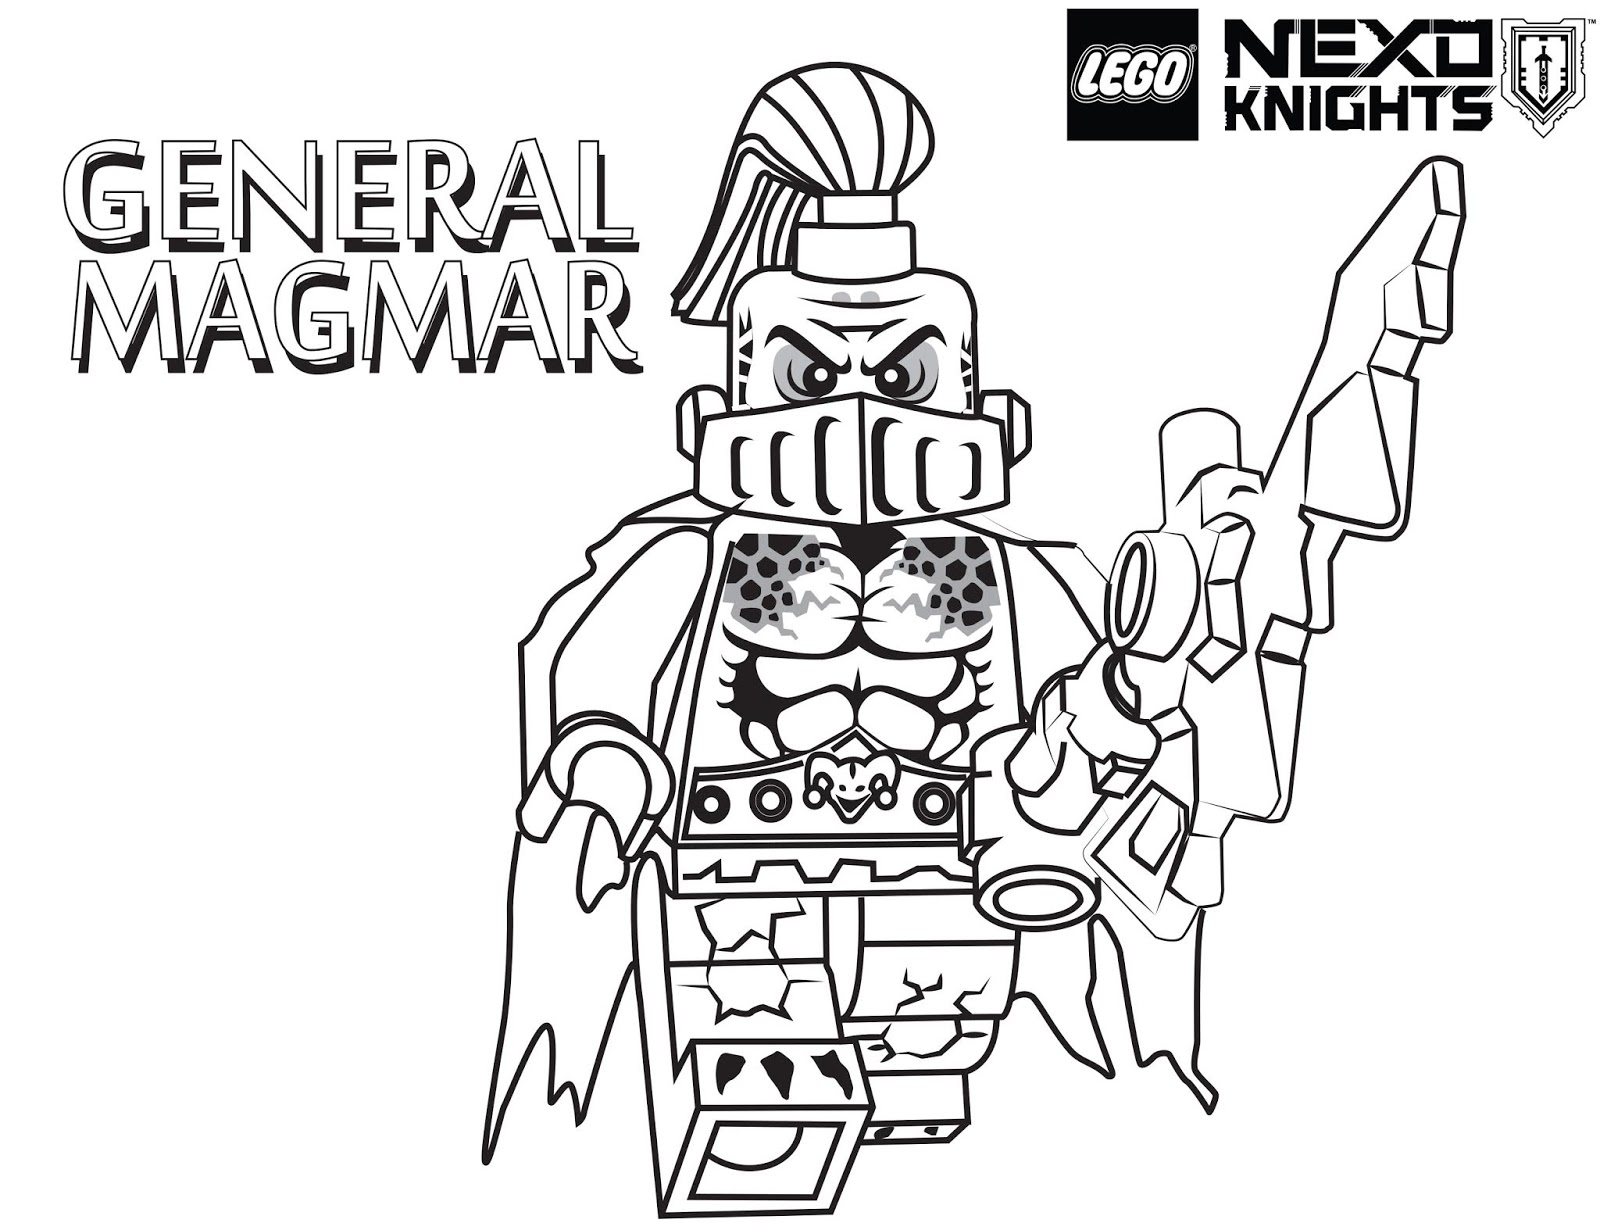 Scary General Magmar Knight Coloring Page Free Printable